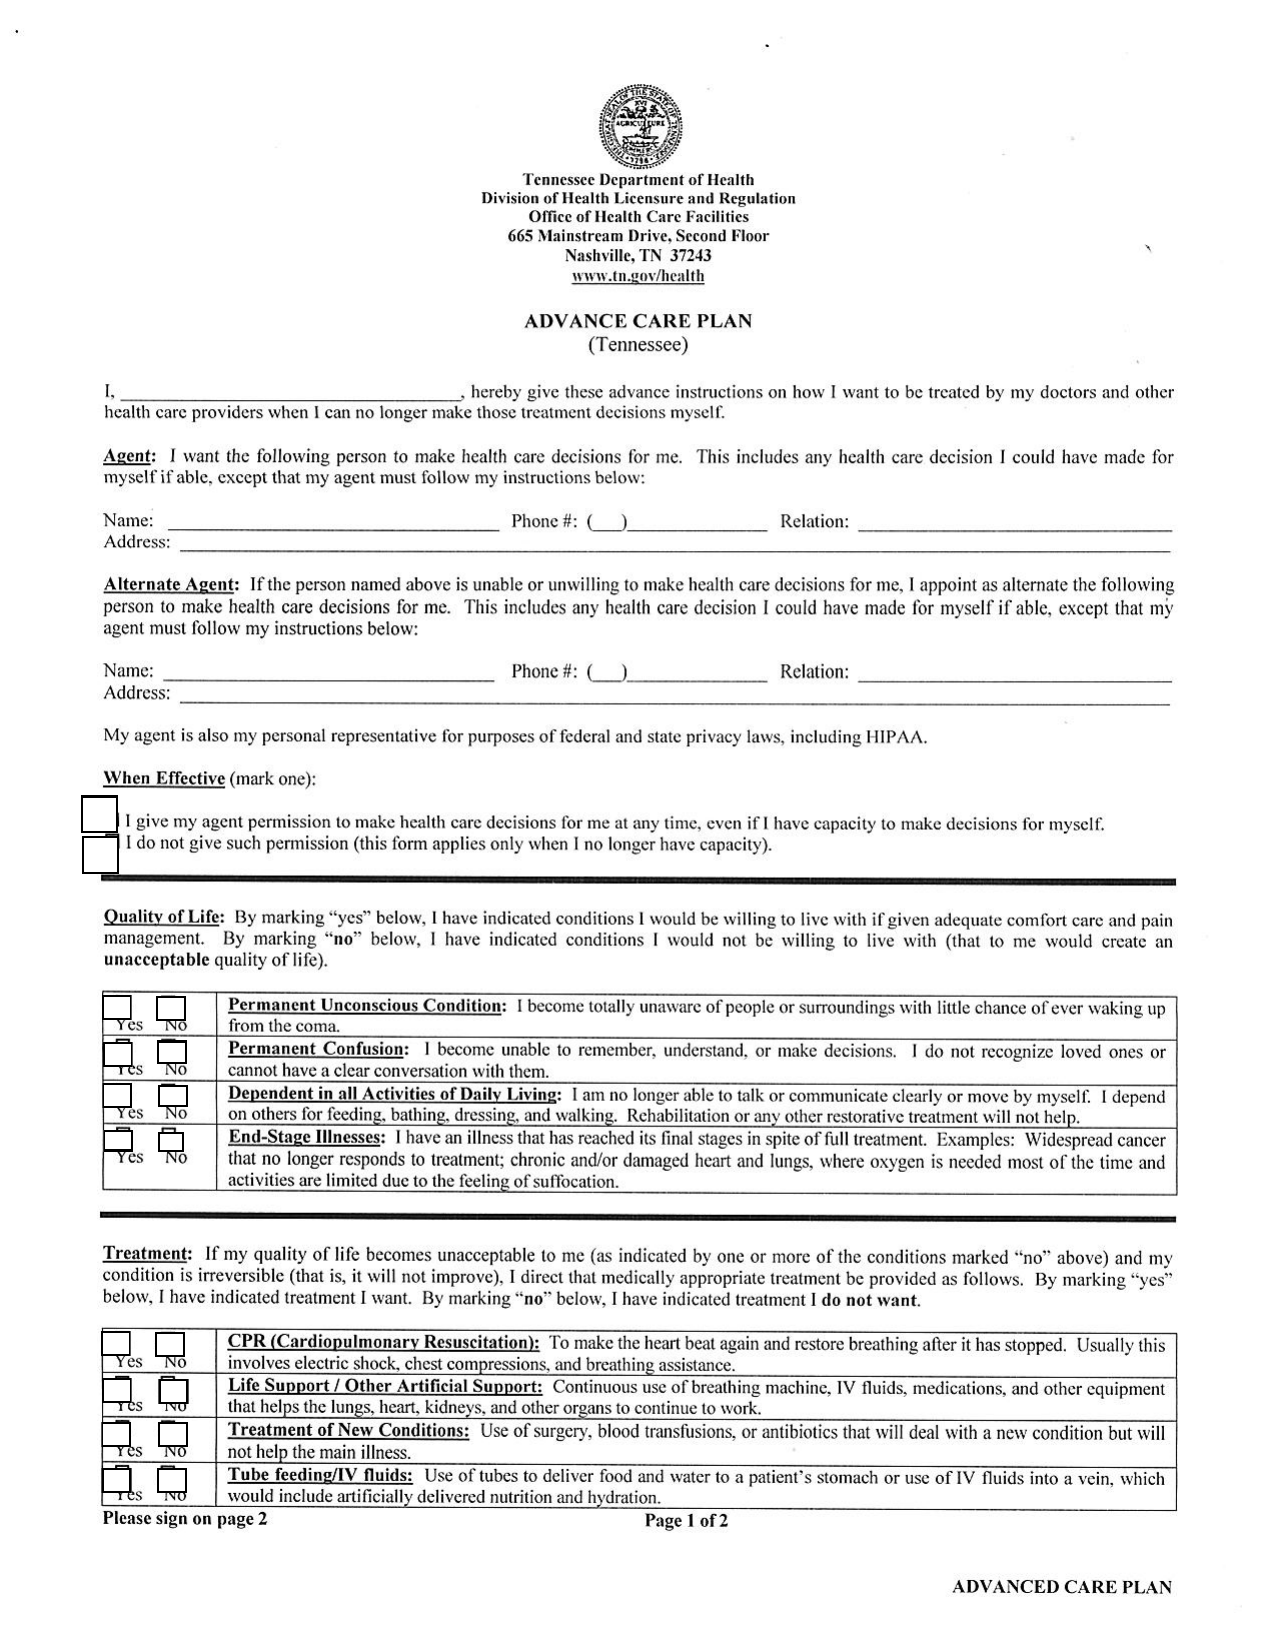 Download Tennessee Living Will Form Advance Directive